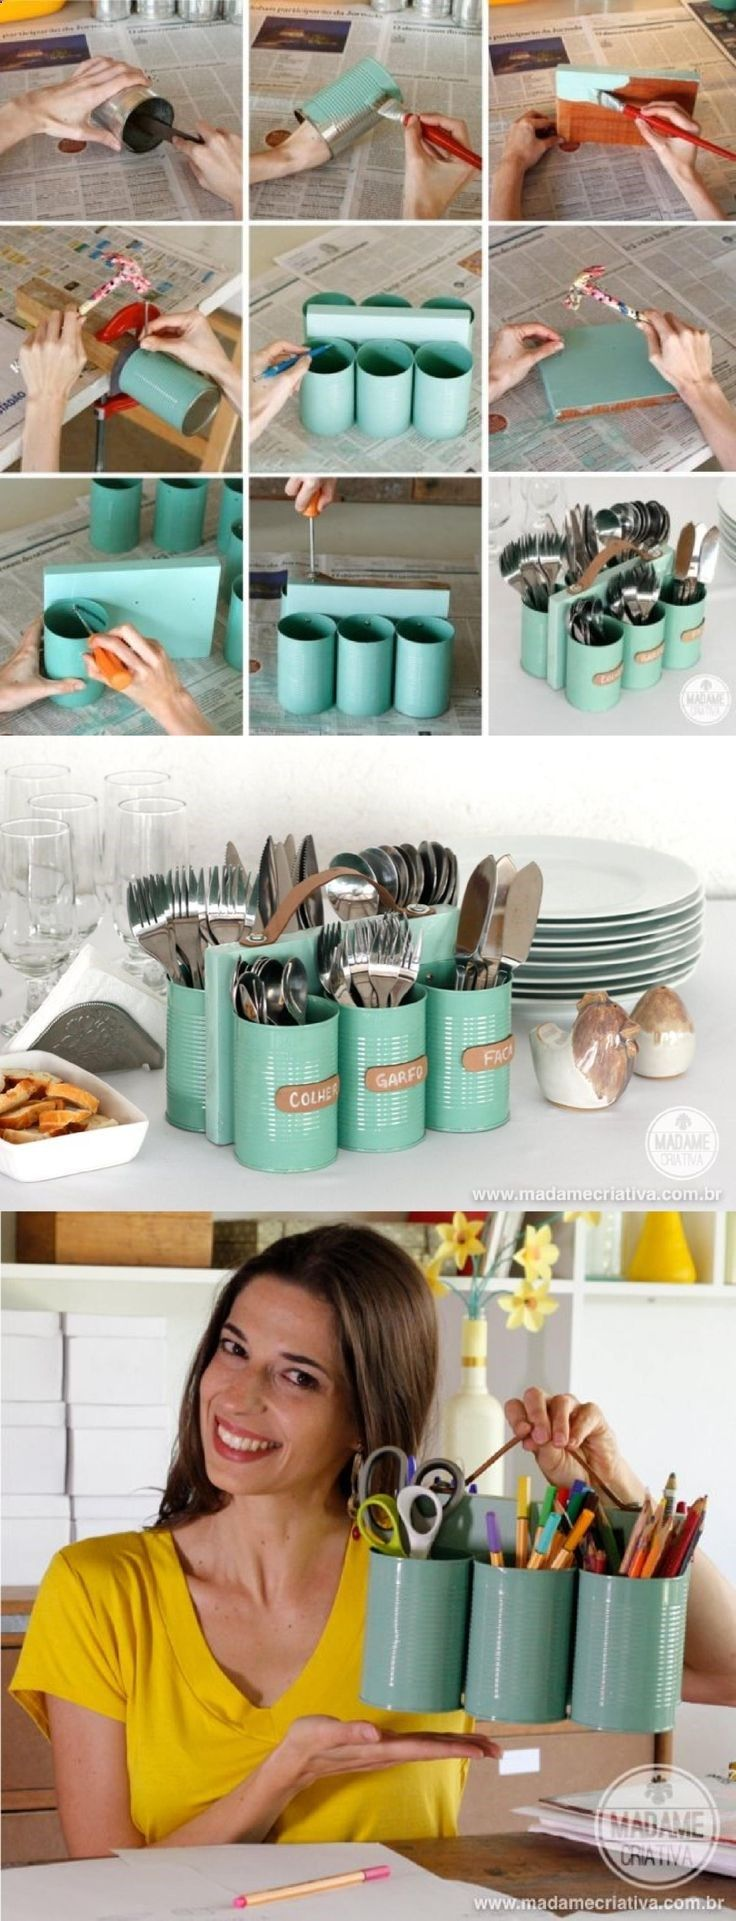 A simple to make supply caddy from tin cans for silverware, crafting tools, pens pencils....whatever you need!